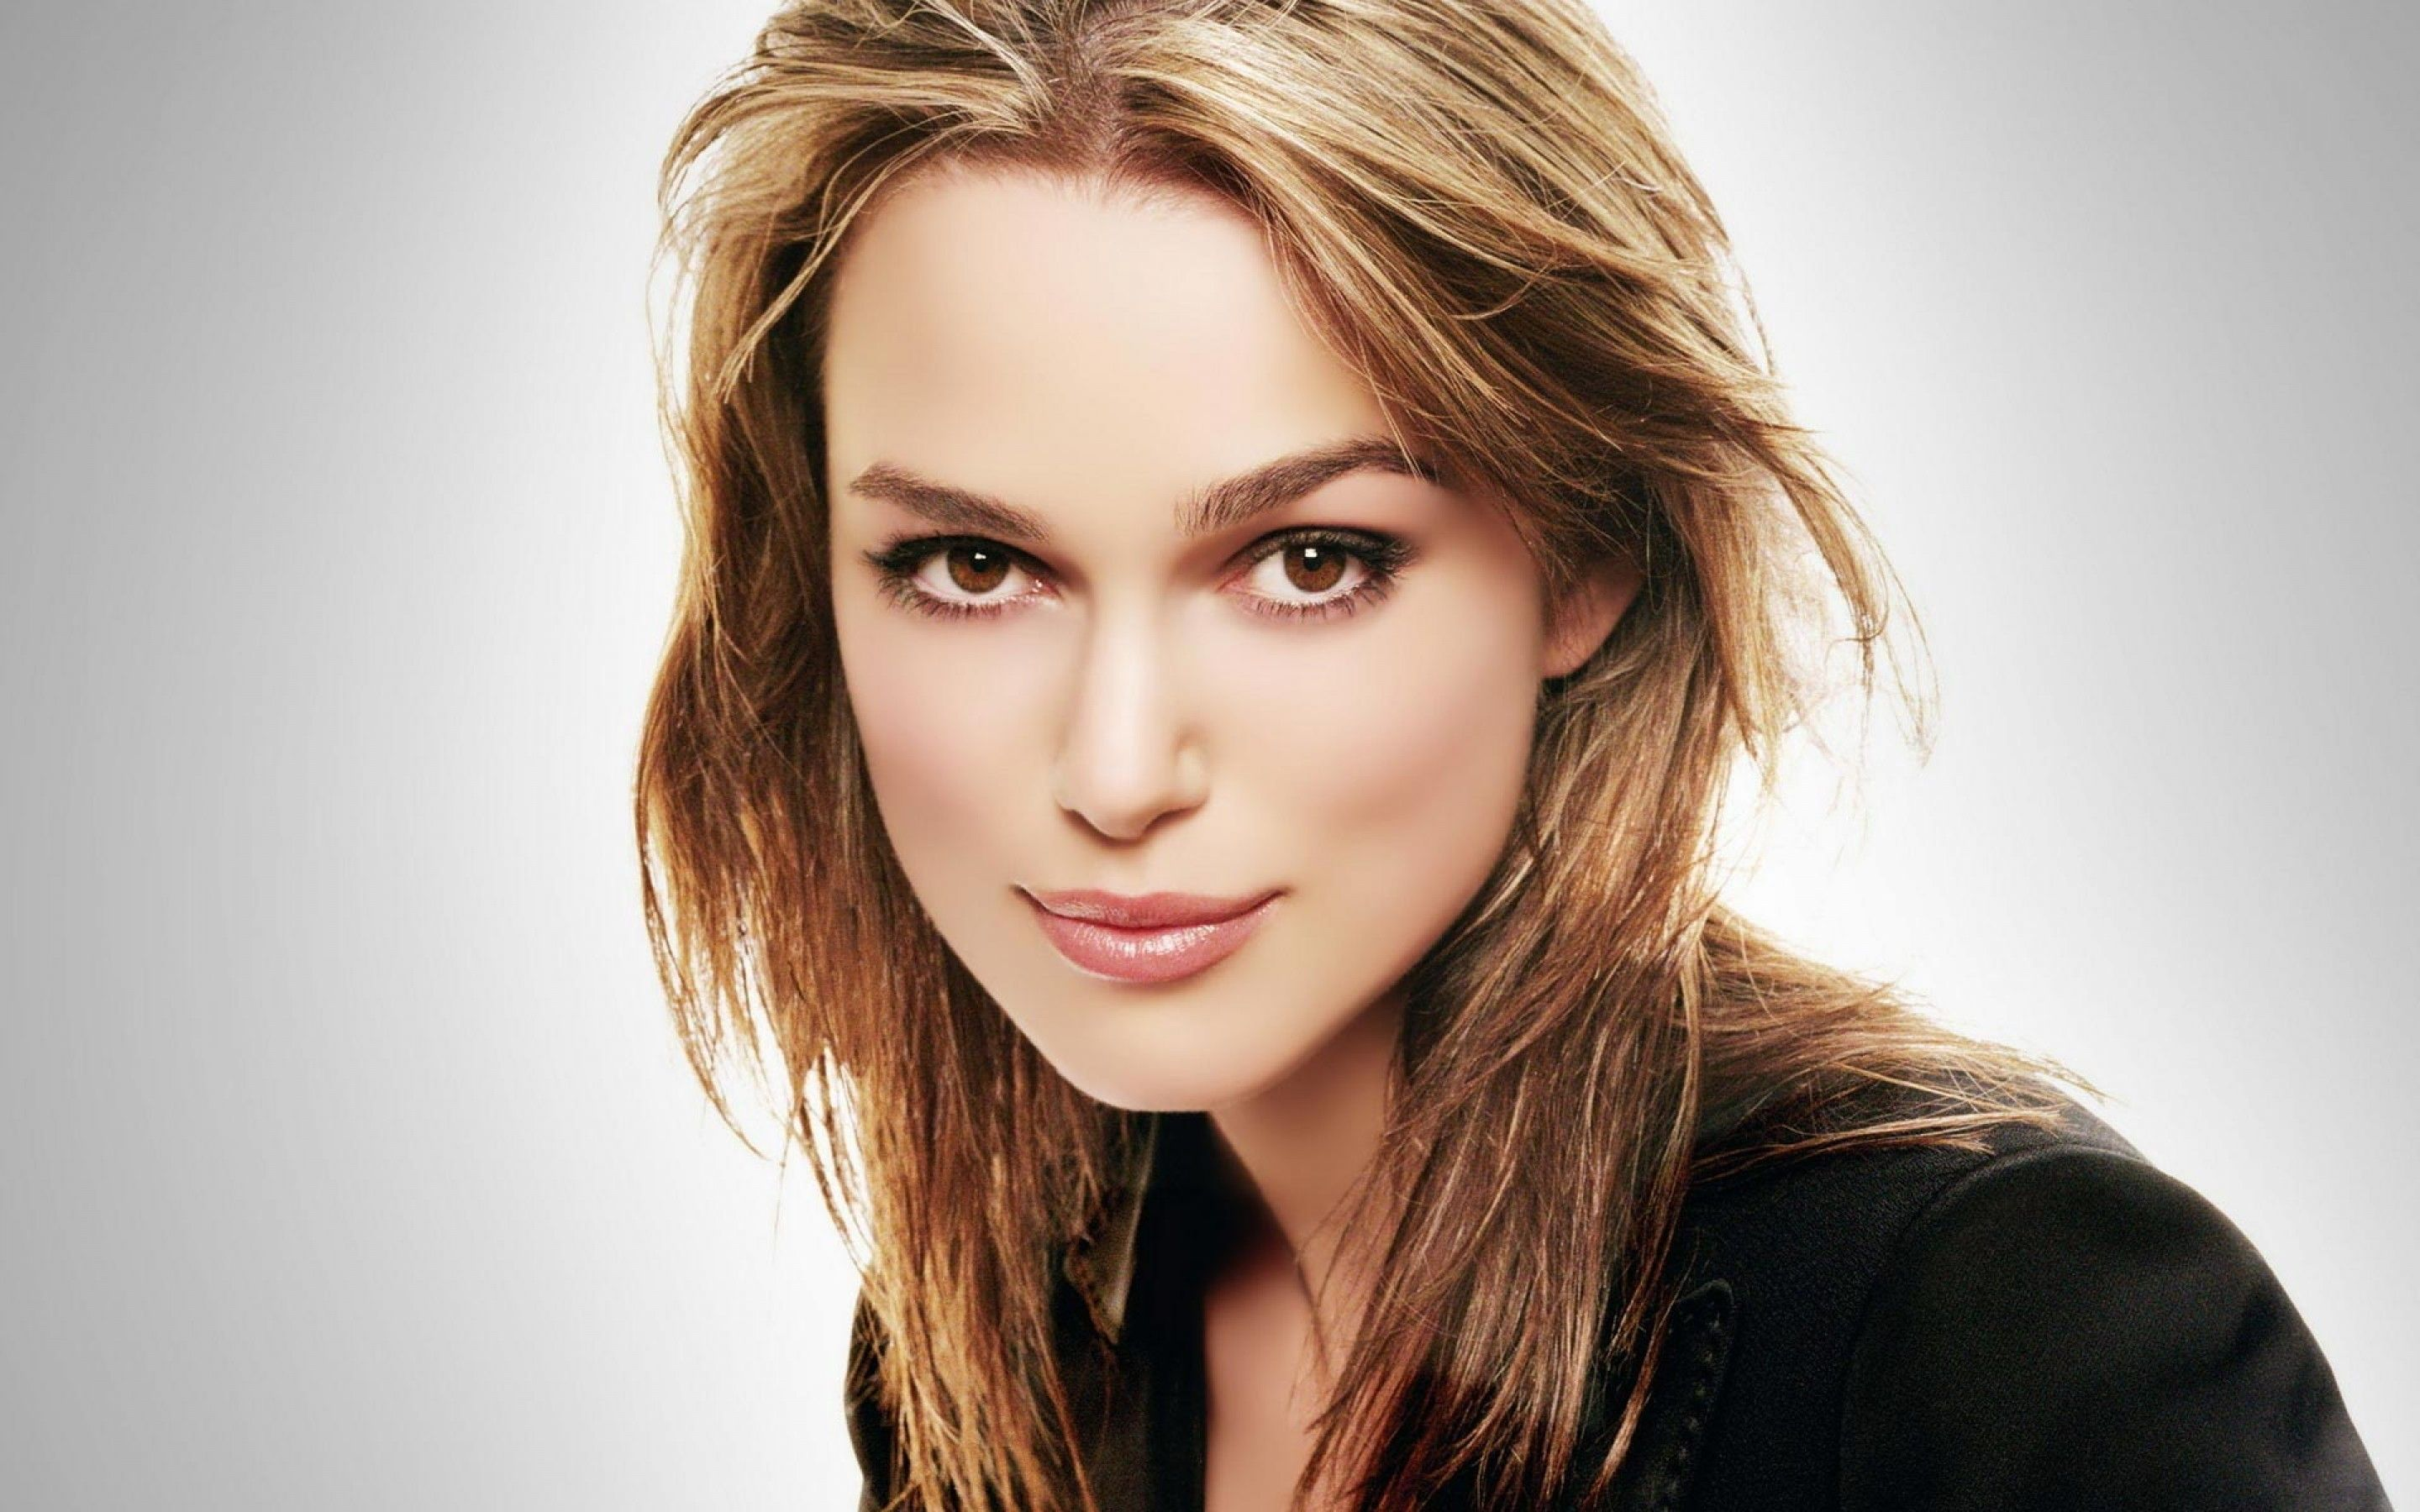 Kira Knightley Wallpaper